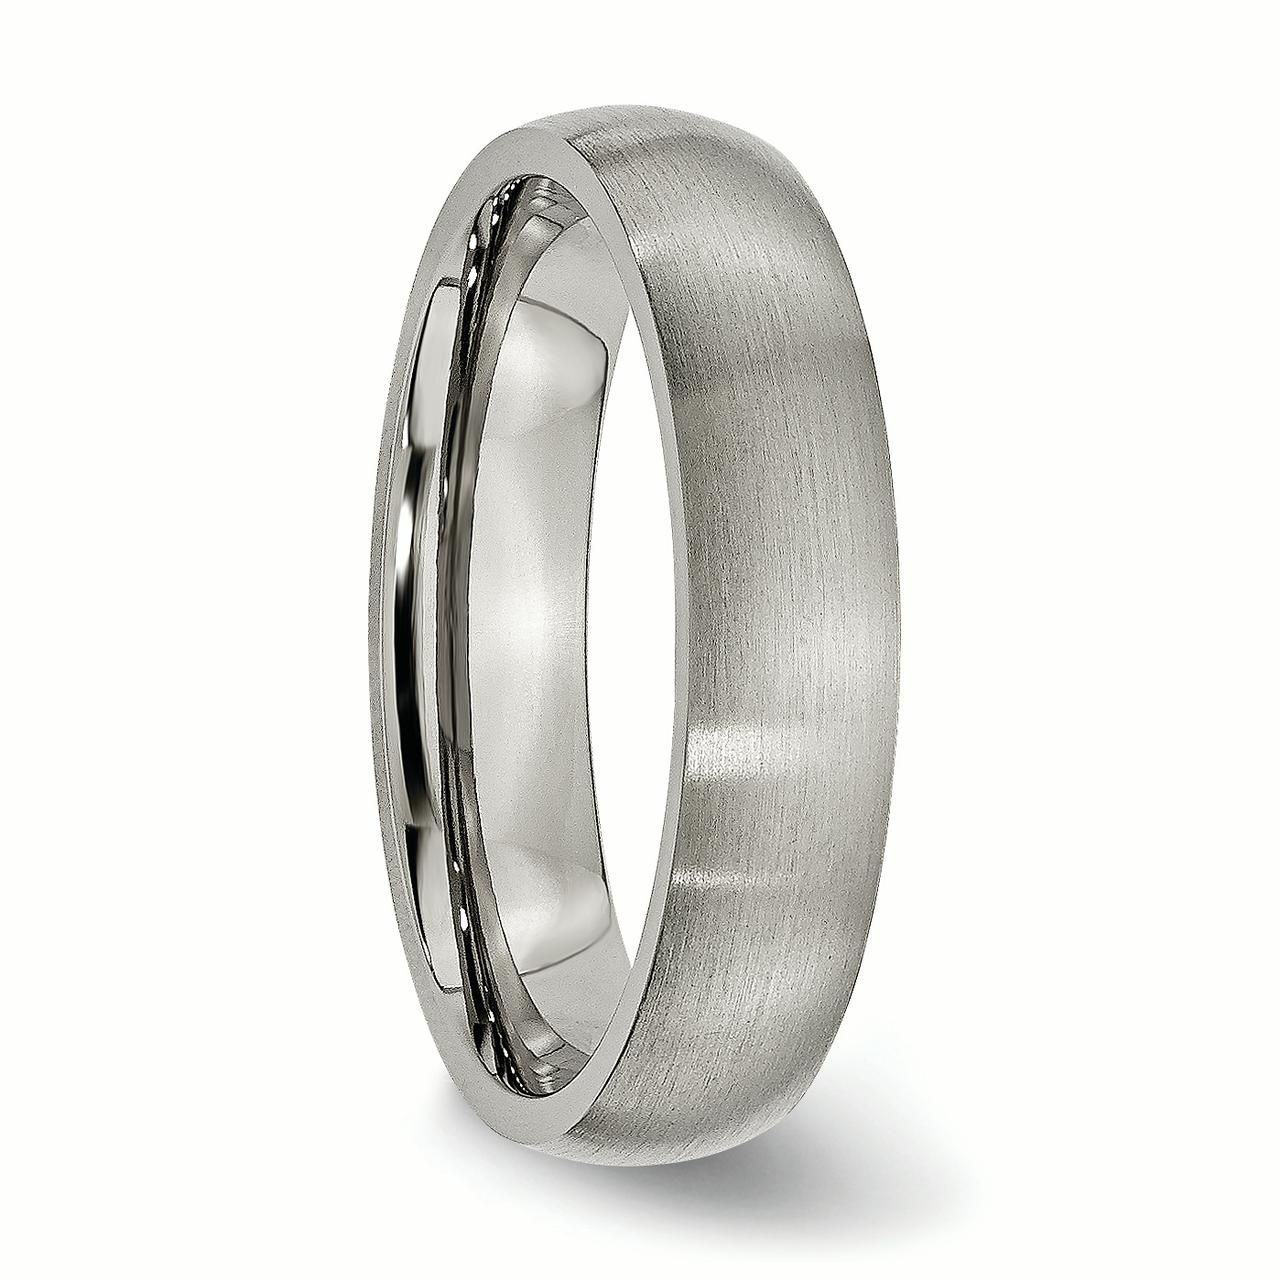 Titanium 5mm Brushed Wedding Ring Band Size 7.00 Classic Domed Fashion Jewelry Gifts For Women For Her - image 4 de 7